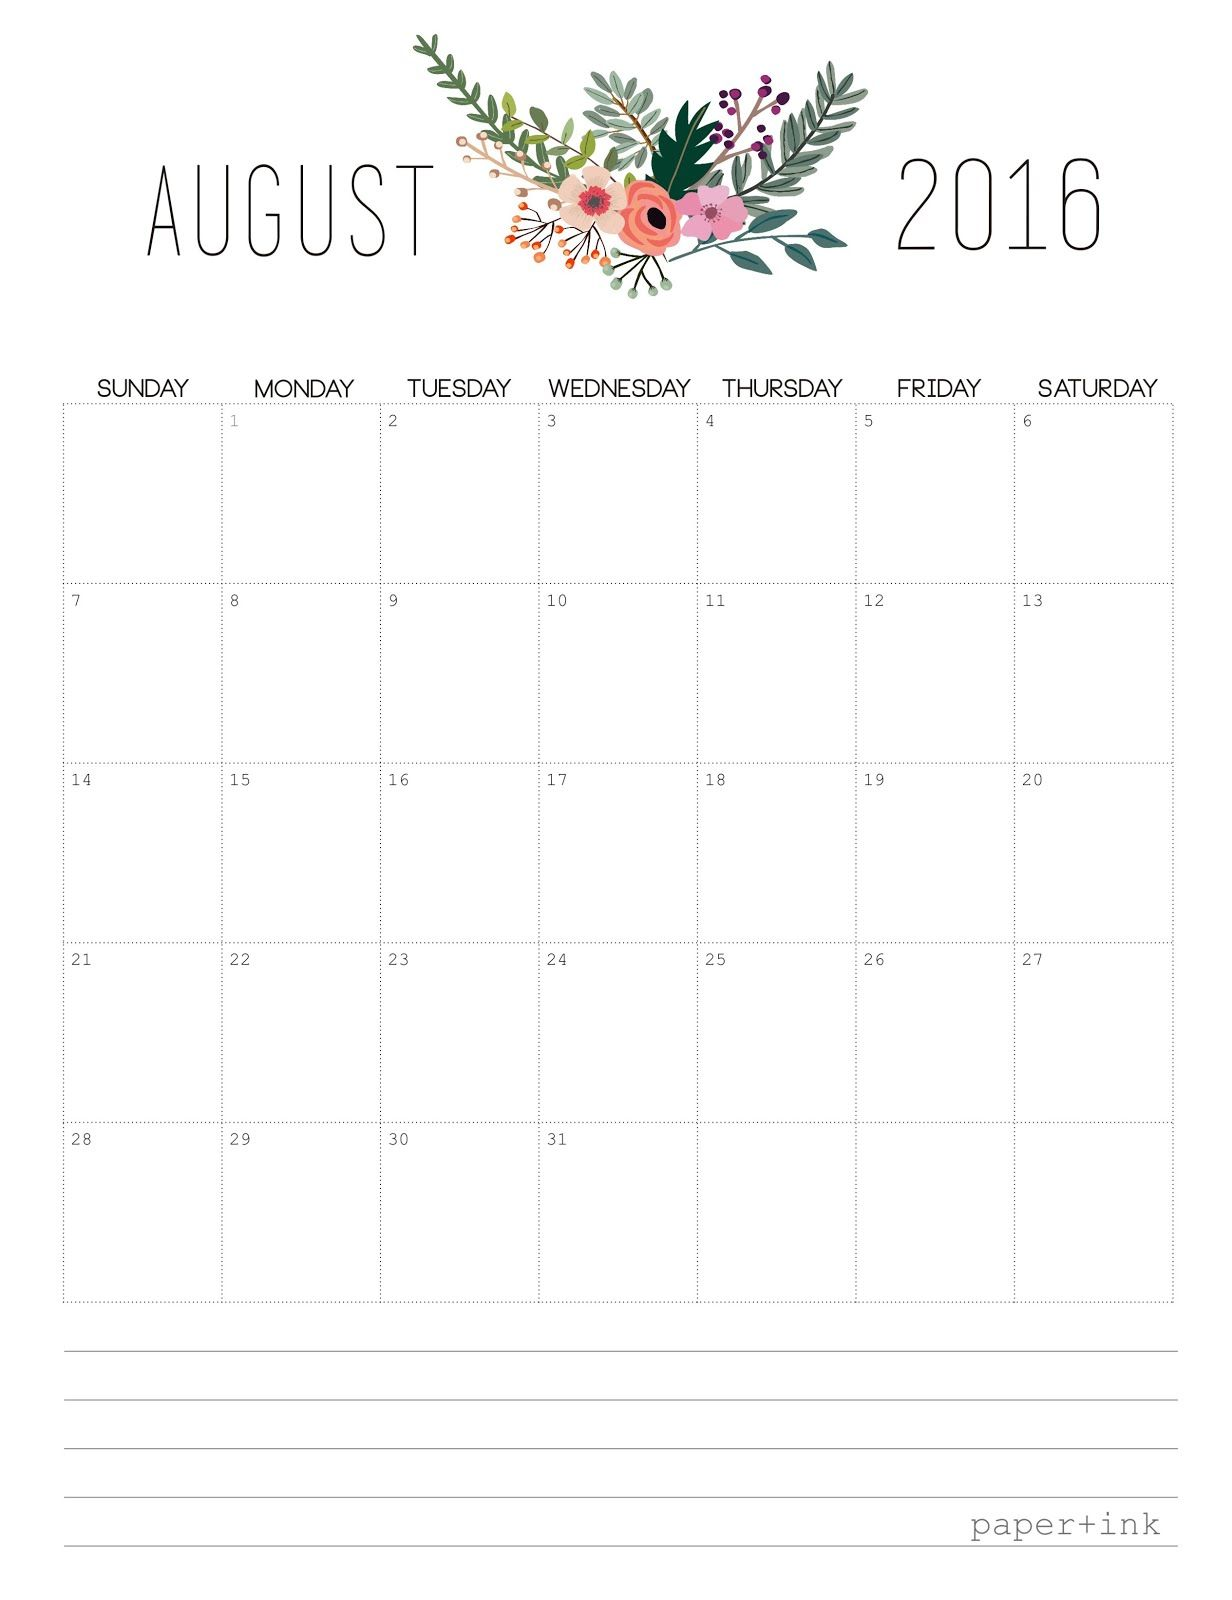 Pretty Unpretentious: Free Printable : August 2016 Calendar